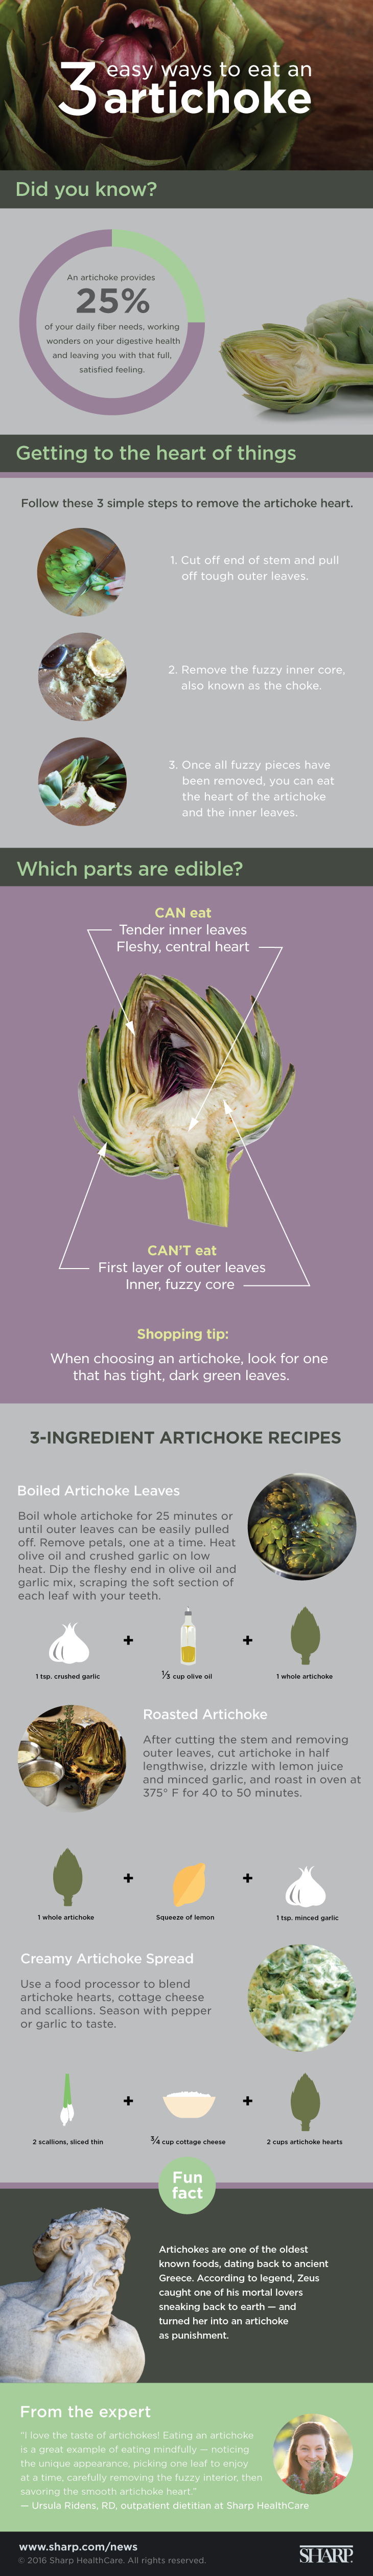 3 easy ways to eat an artichoke (infographic)